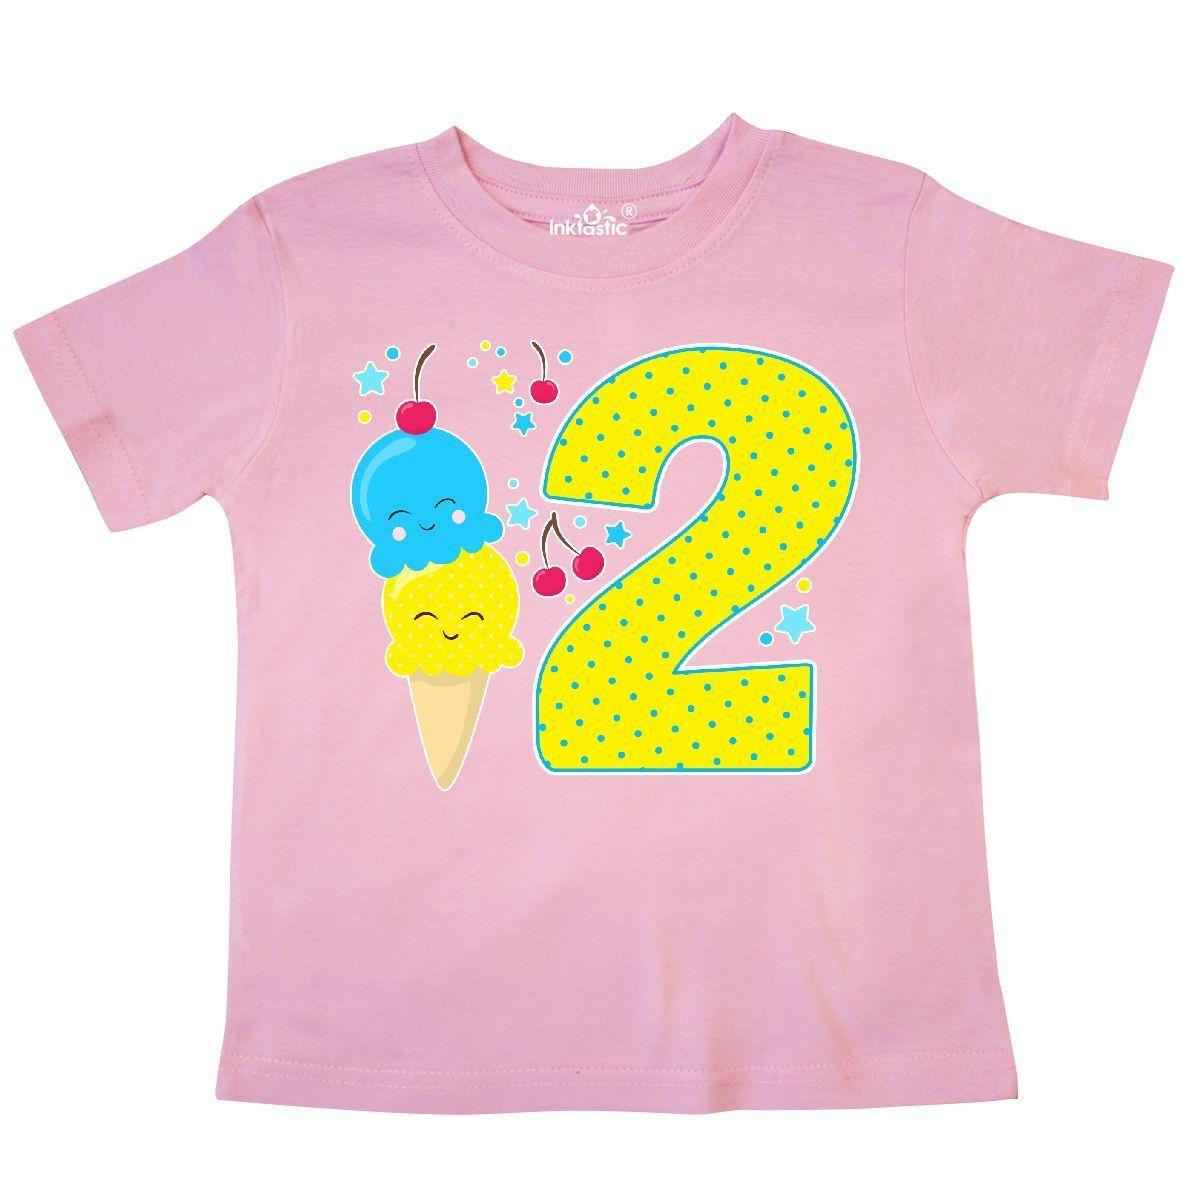 Inktastic Ice Cream Second Birthday Blue Toddler T Shirt Birthdays 2nd 2 Two Old Funny Unisex Casual Tee Gift Tees Shirts Cheap Design And Buy From